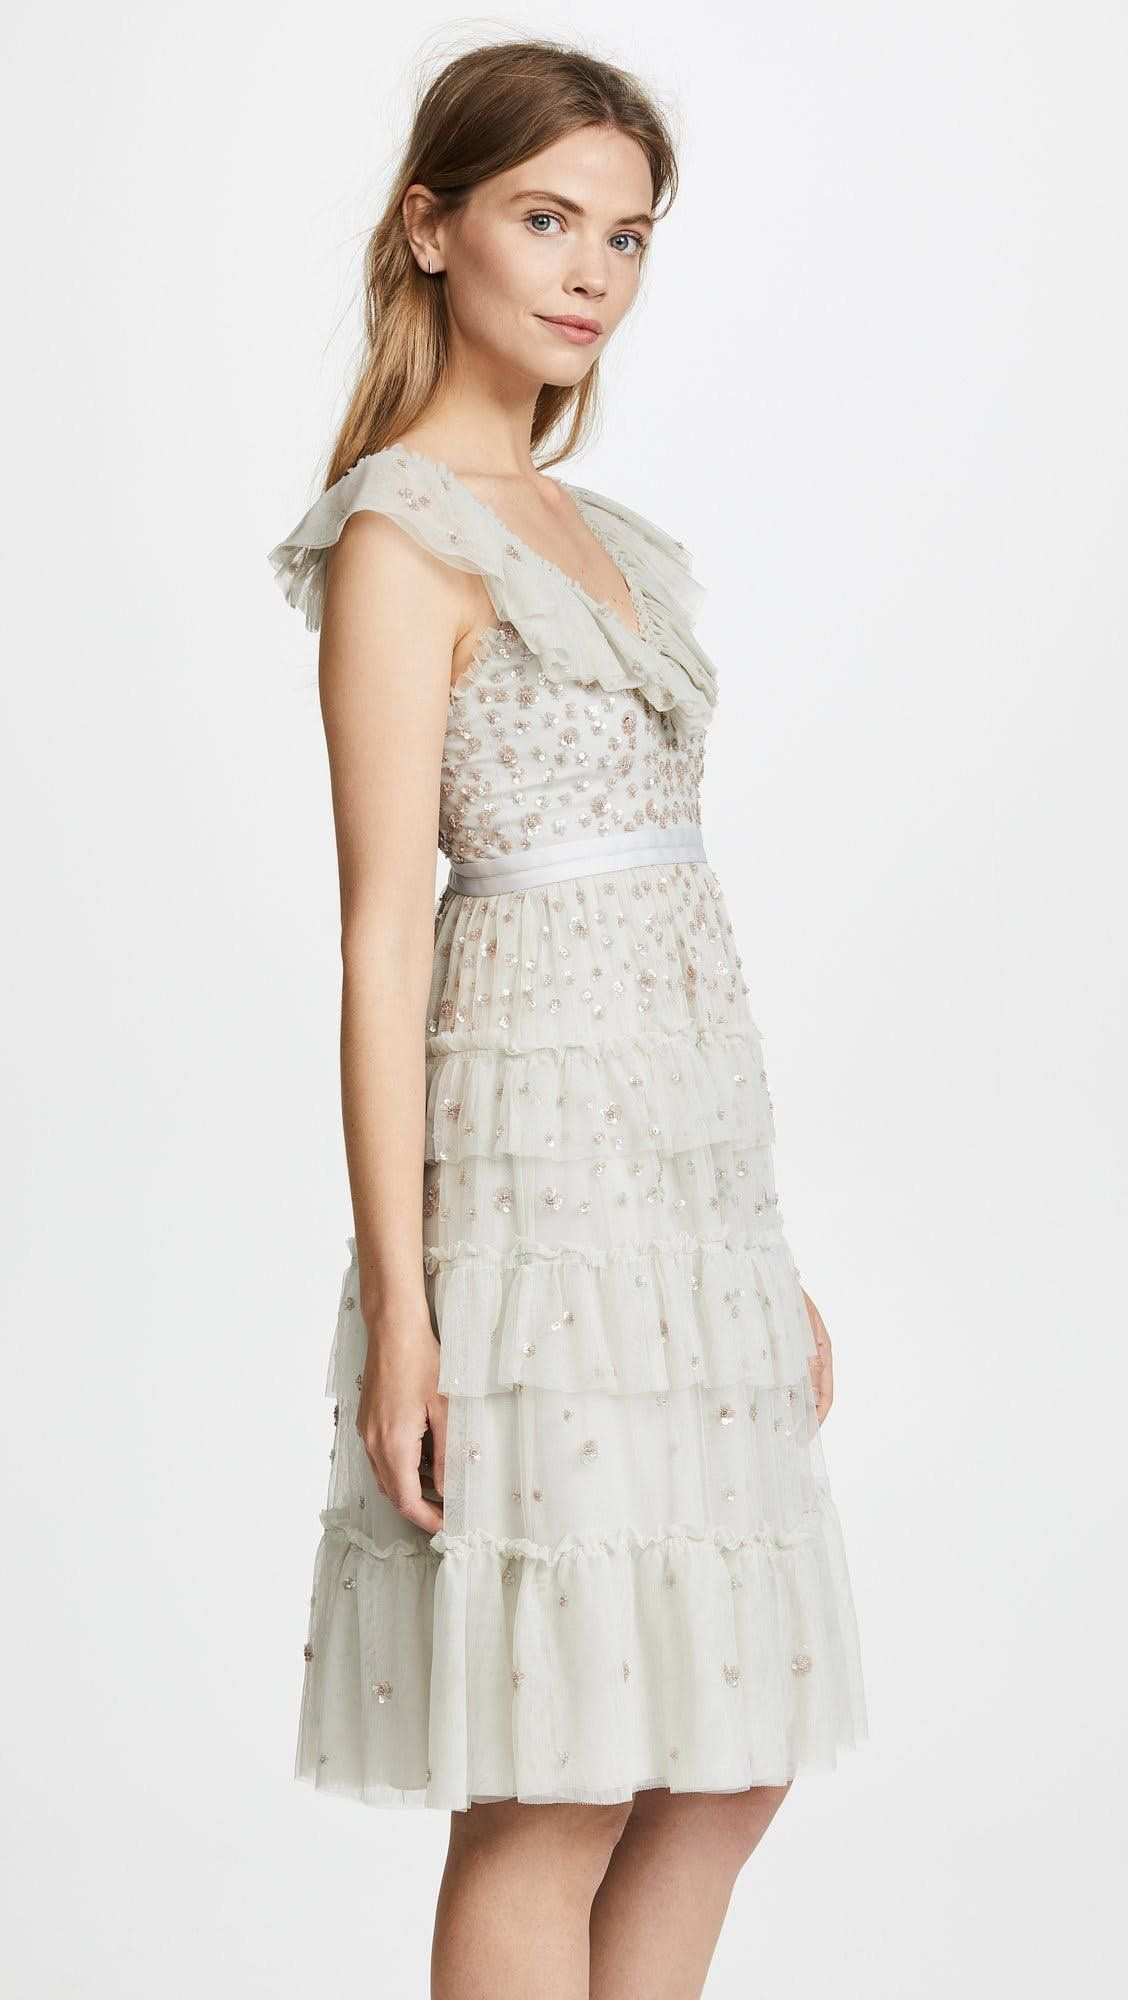 12 affordable spring wedding guest dresses you can score